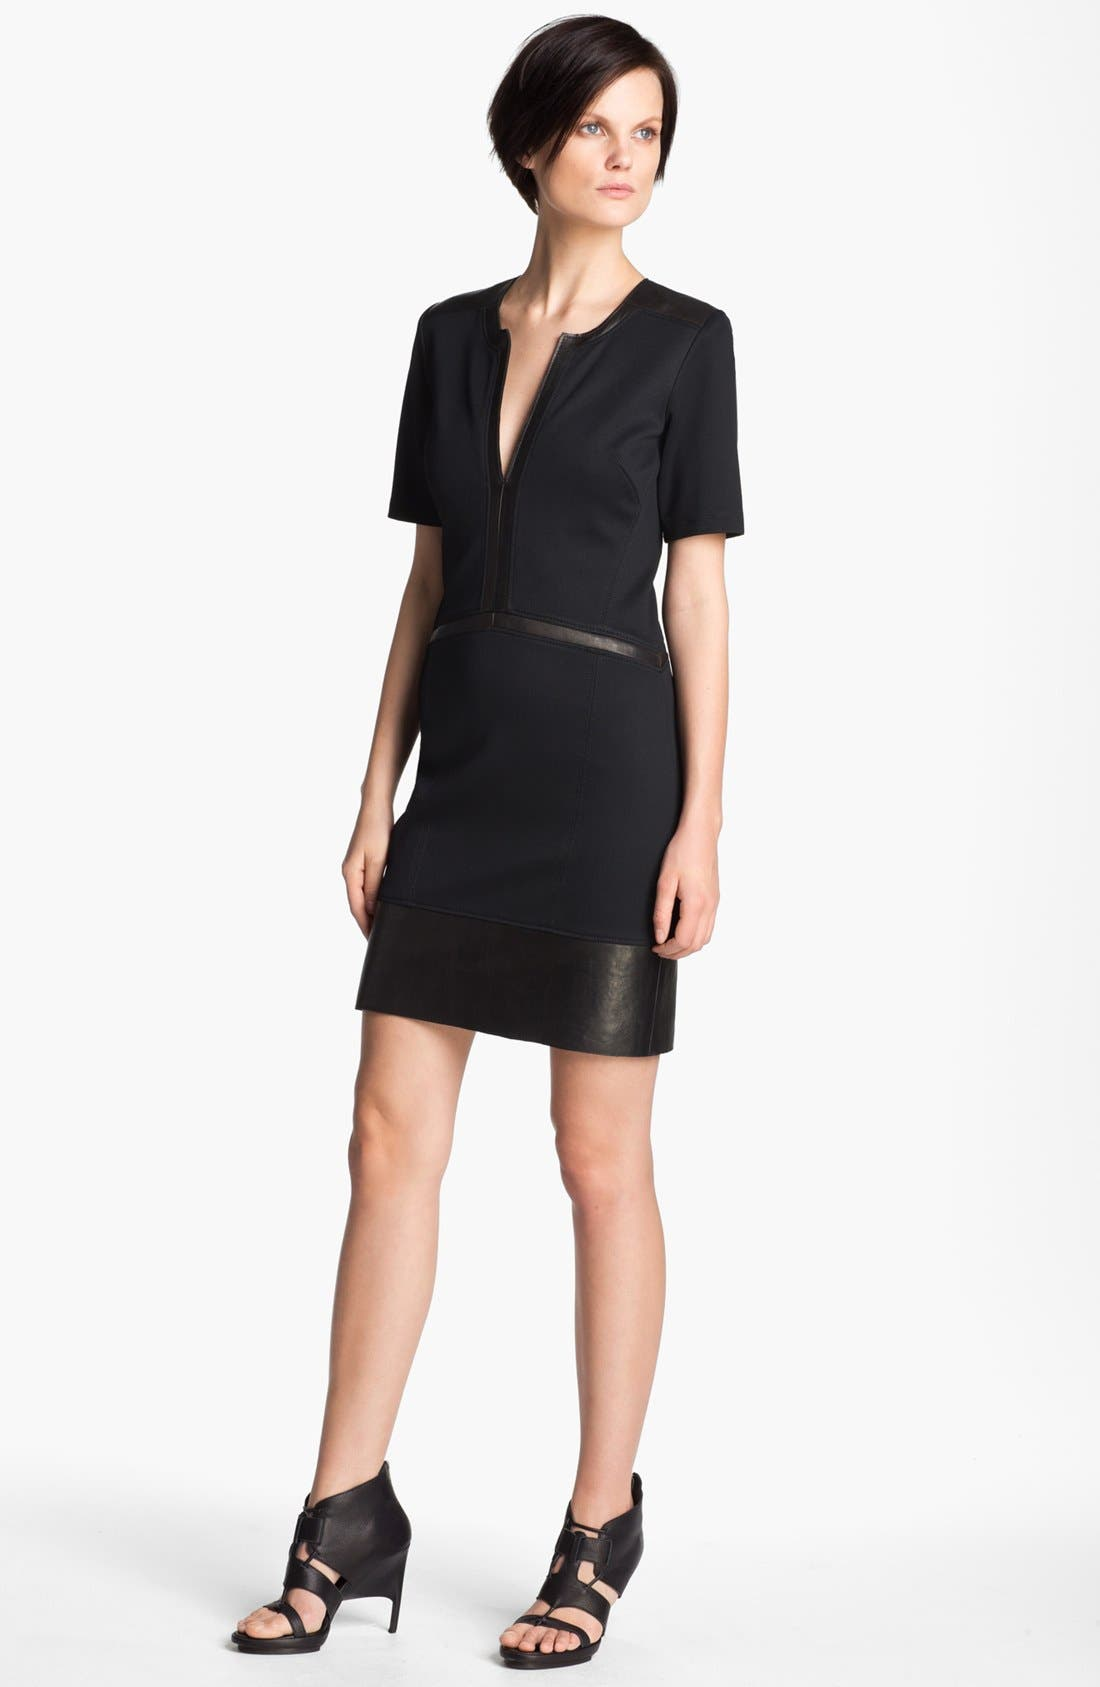 Main Image - Helmut Lang 'Motion' Leather Trim Dress